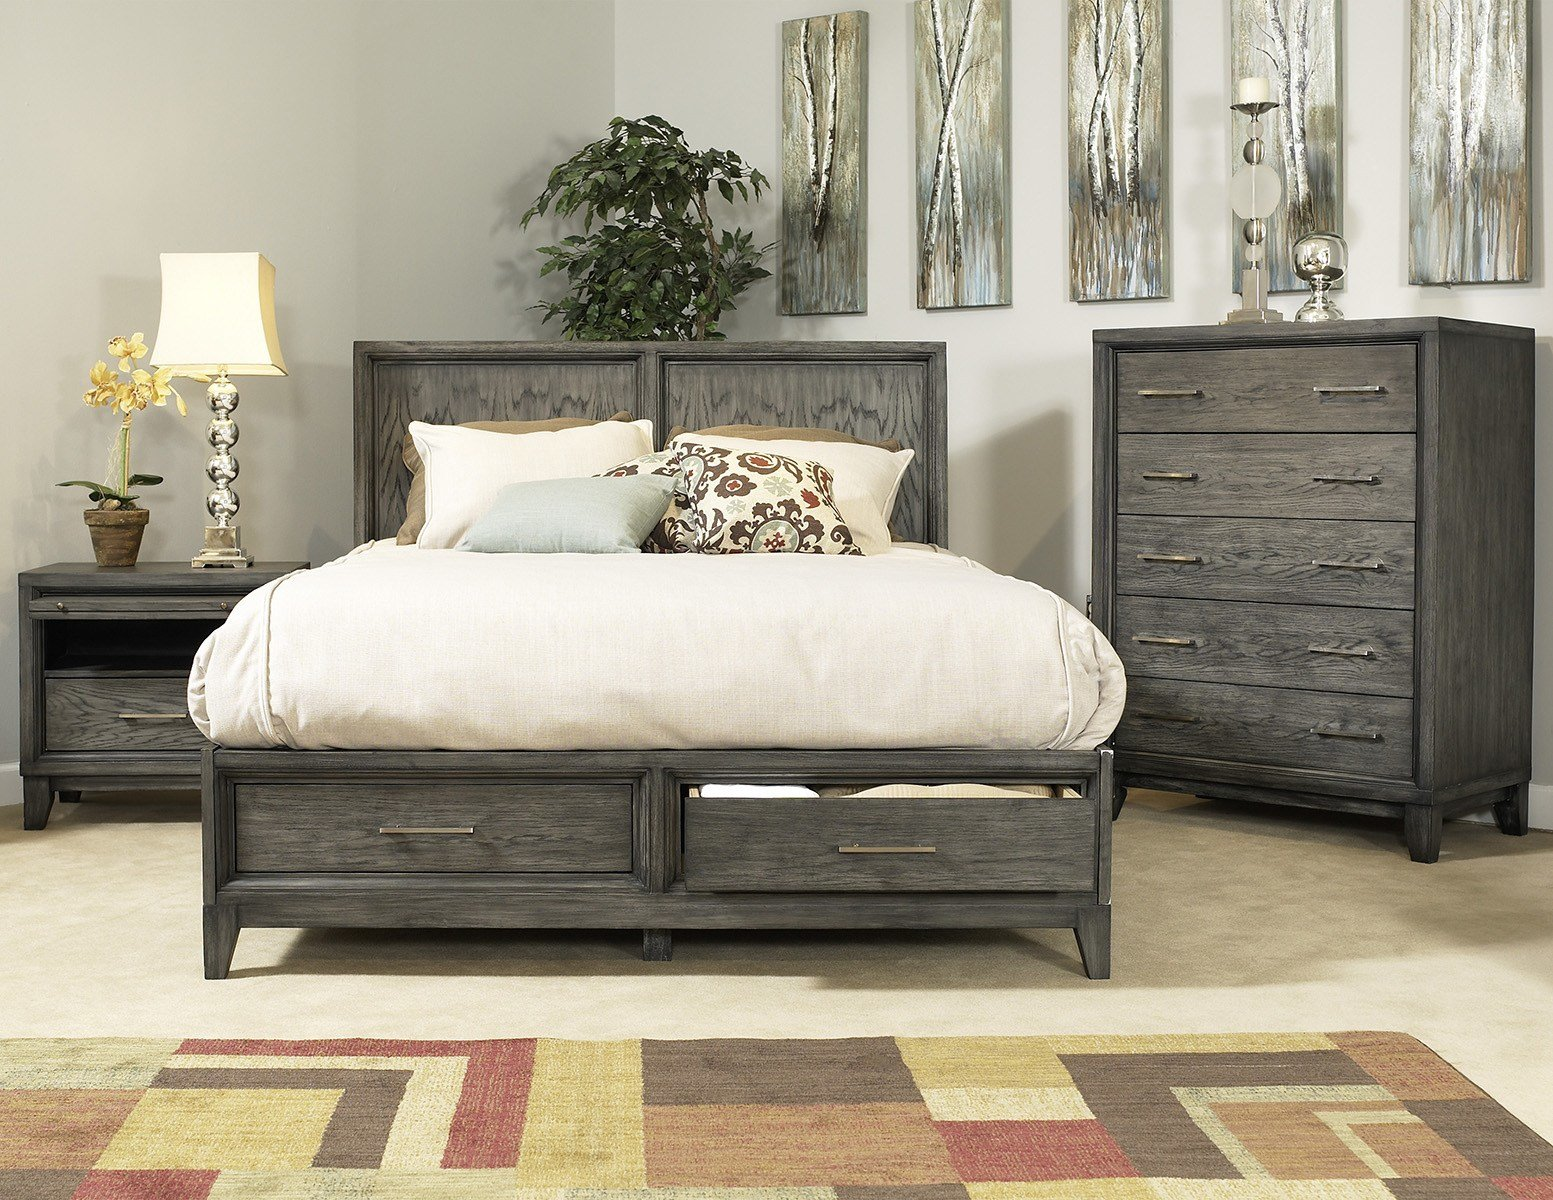 Best Ligna Soho 4 Piece Panel Storage Bedroom Set In Gray Wash With Pictures